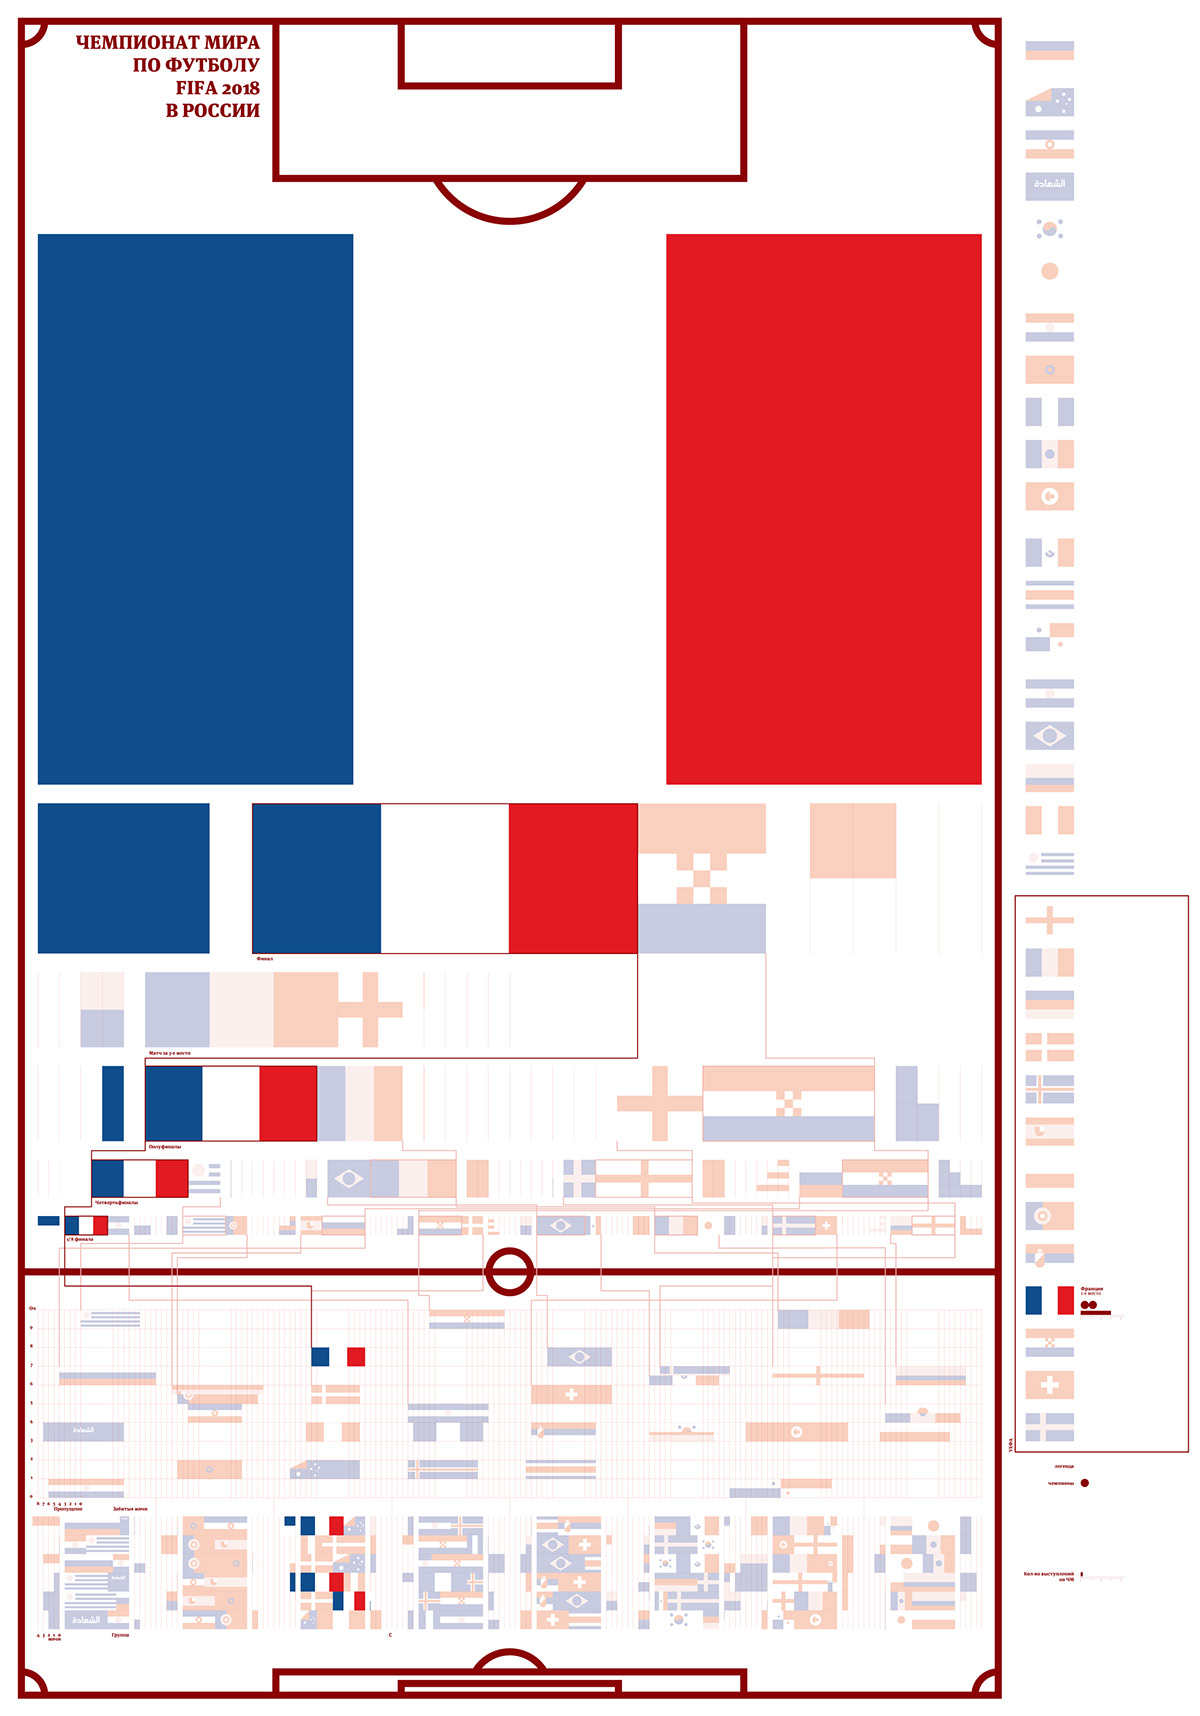 graphic poster design infographic visualization swiss abstract